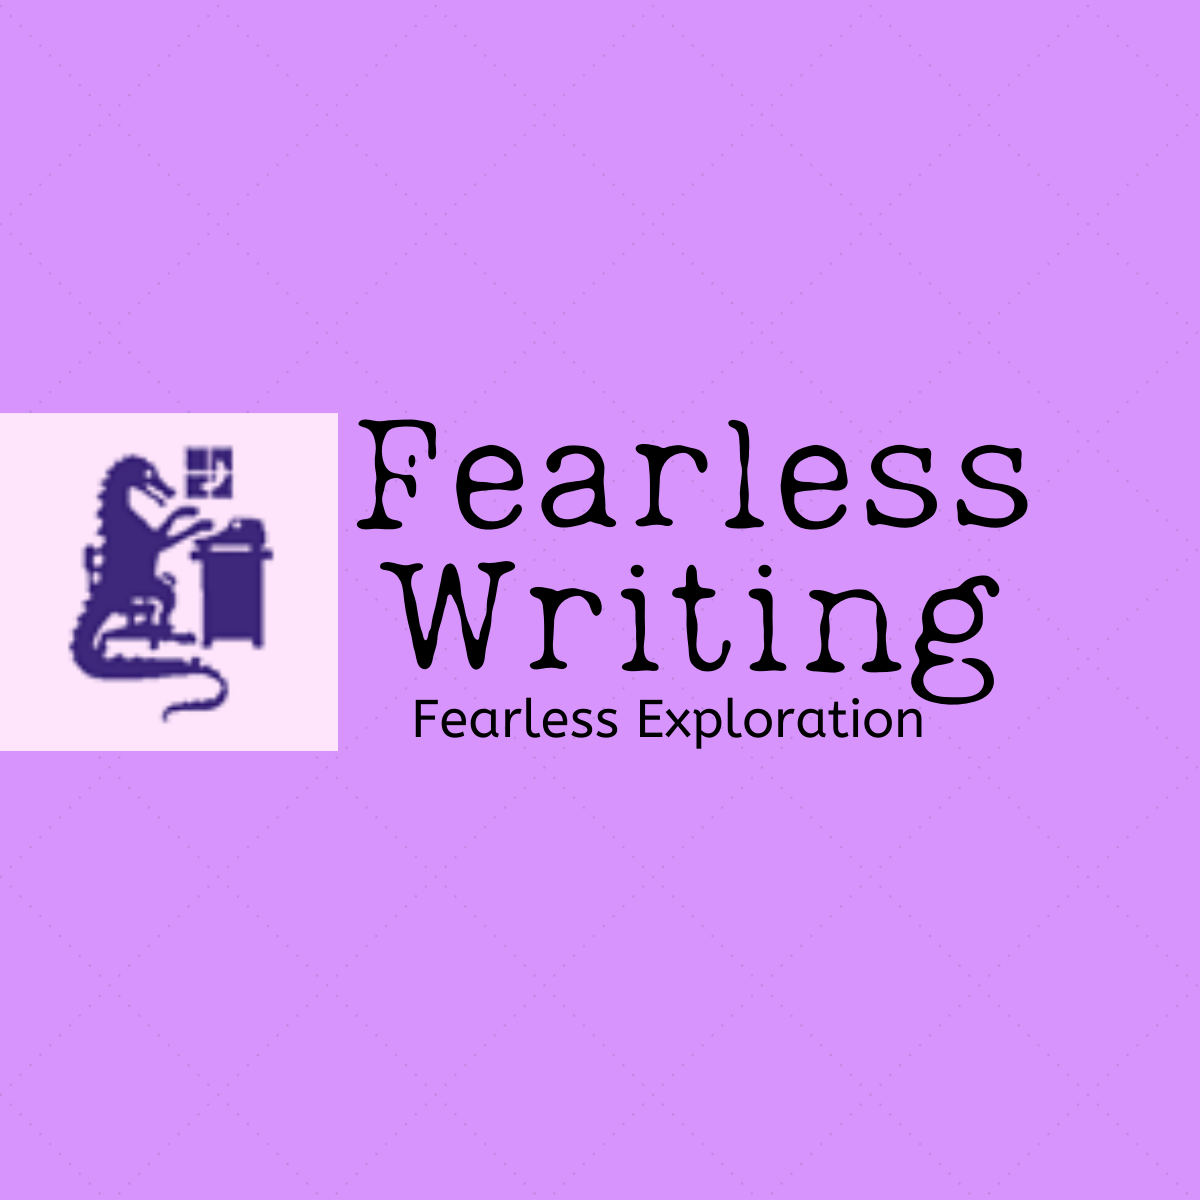 Fearless Writing Exploration